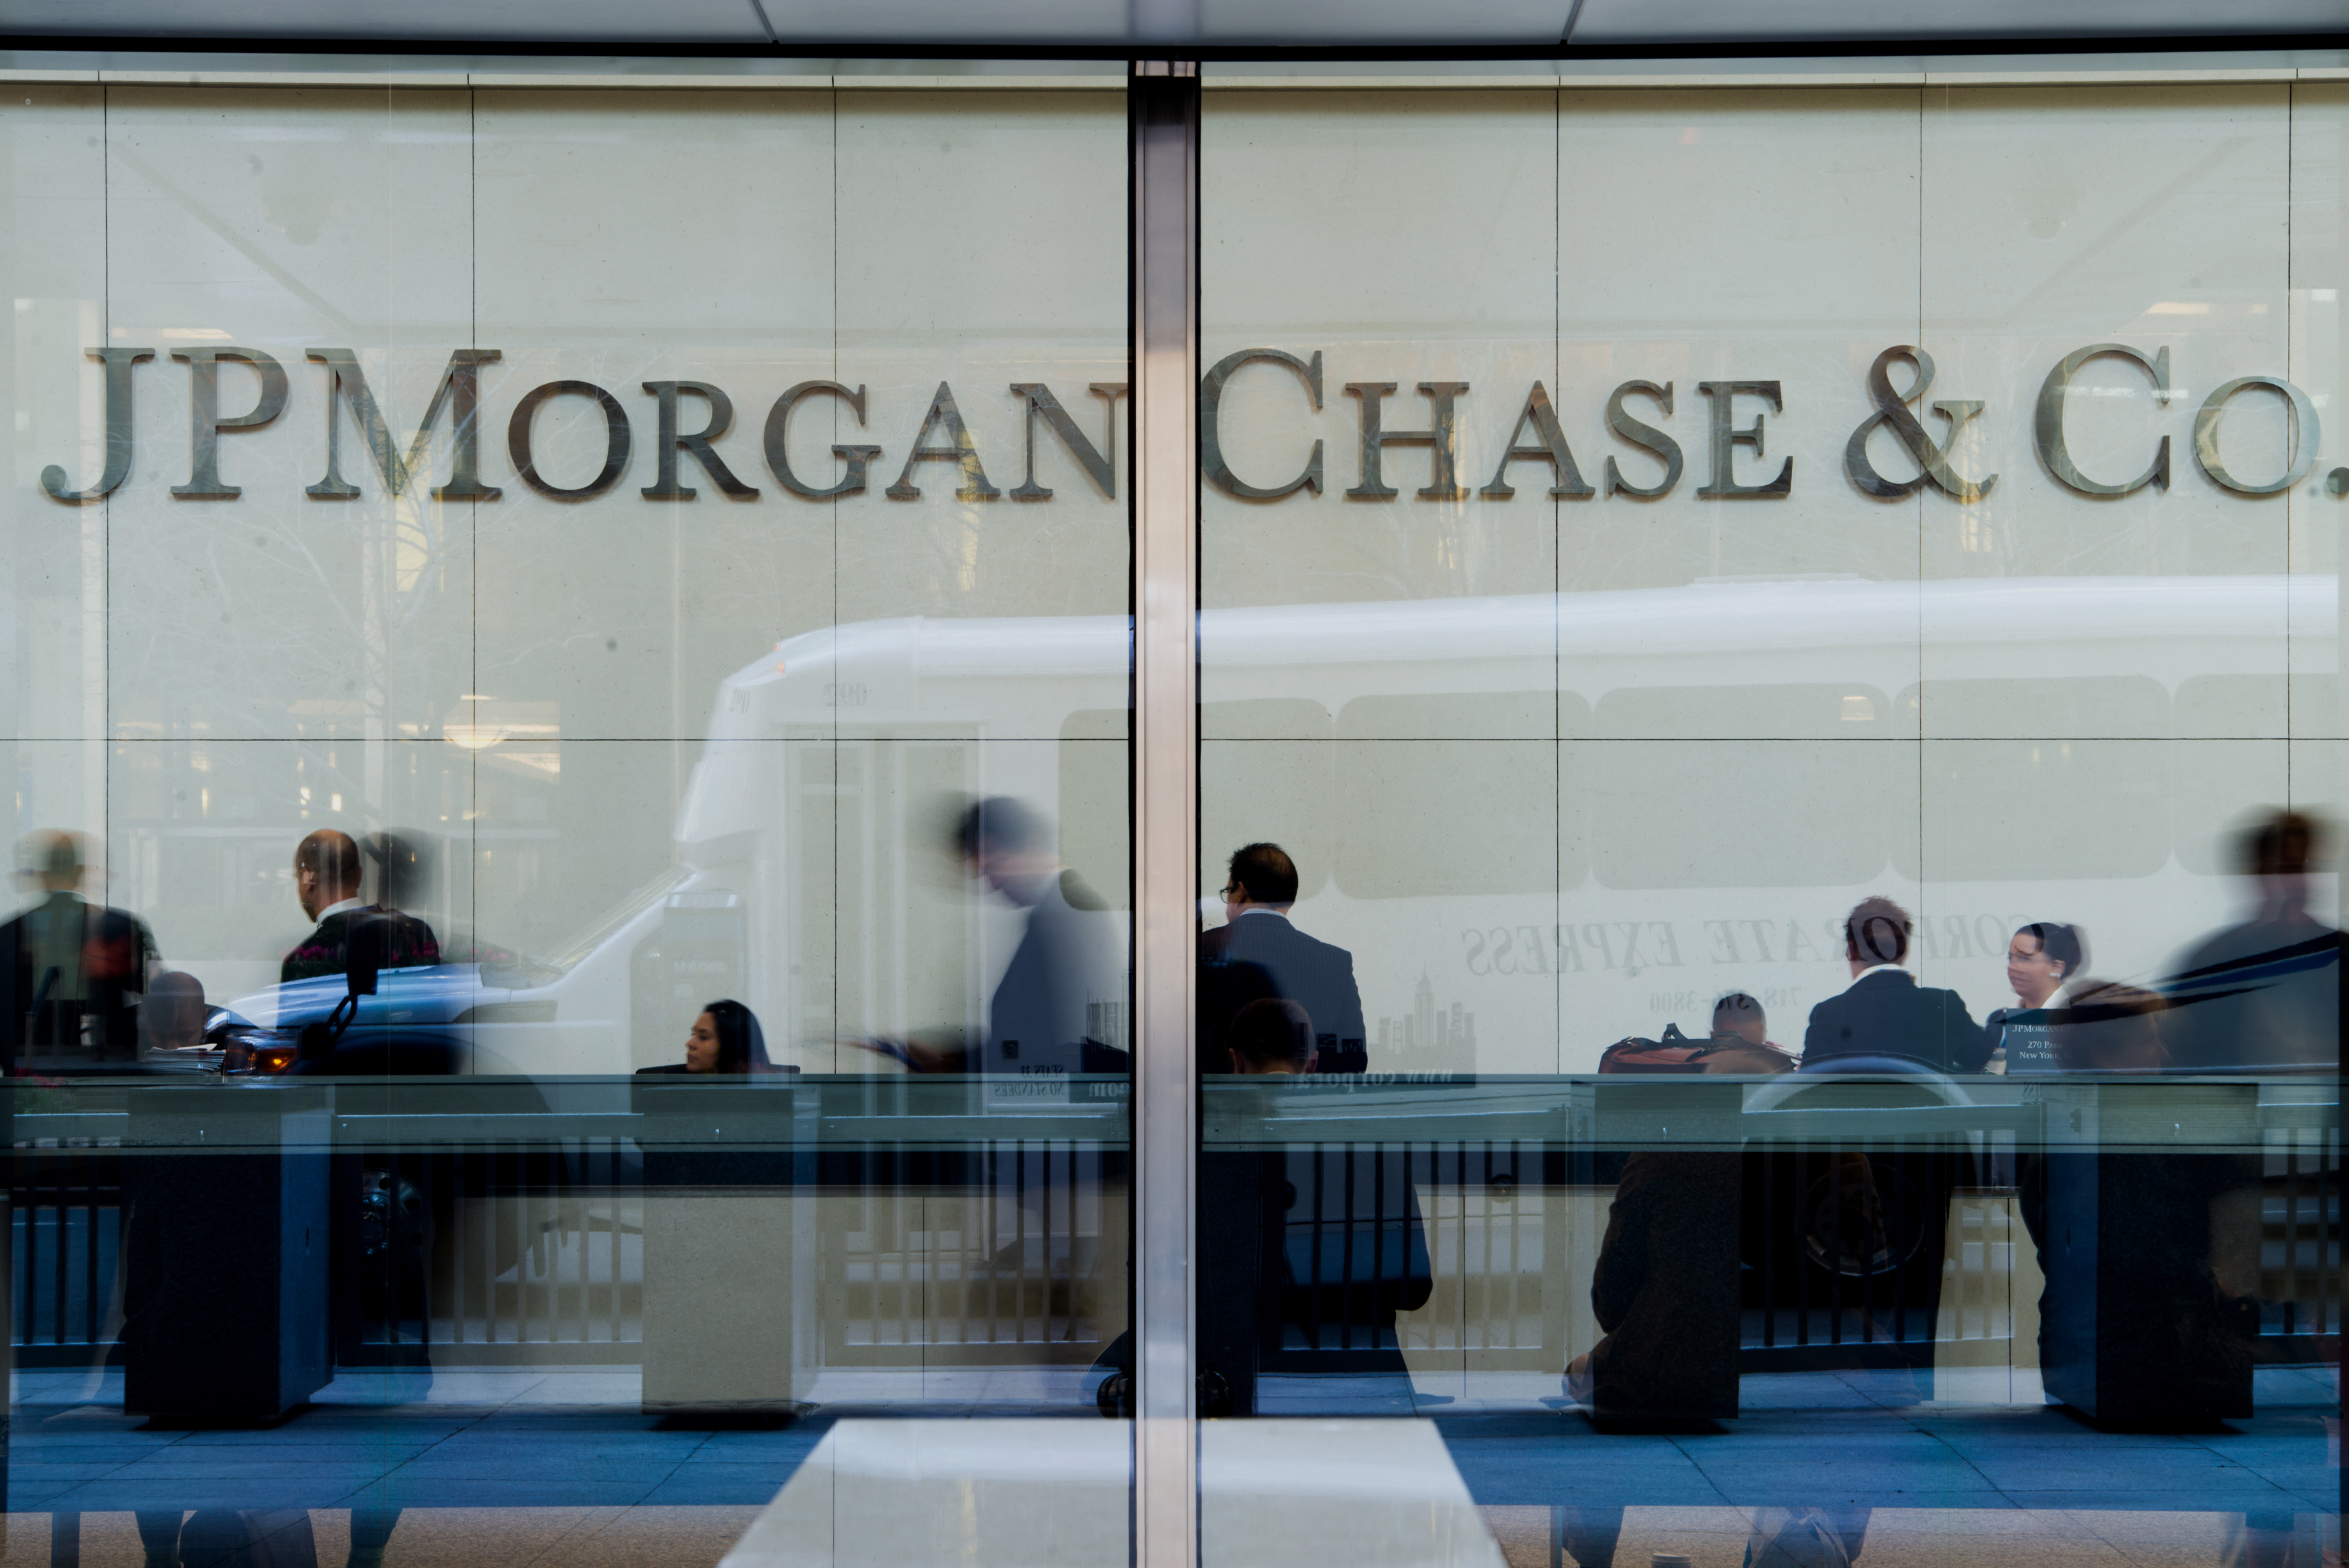 Cancer Treatment For JPMorgan Chase Chief Executive Officer Jamie Dimon